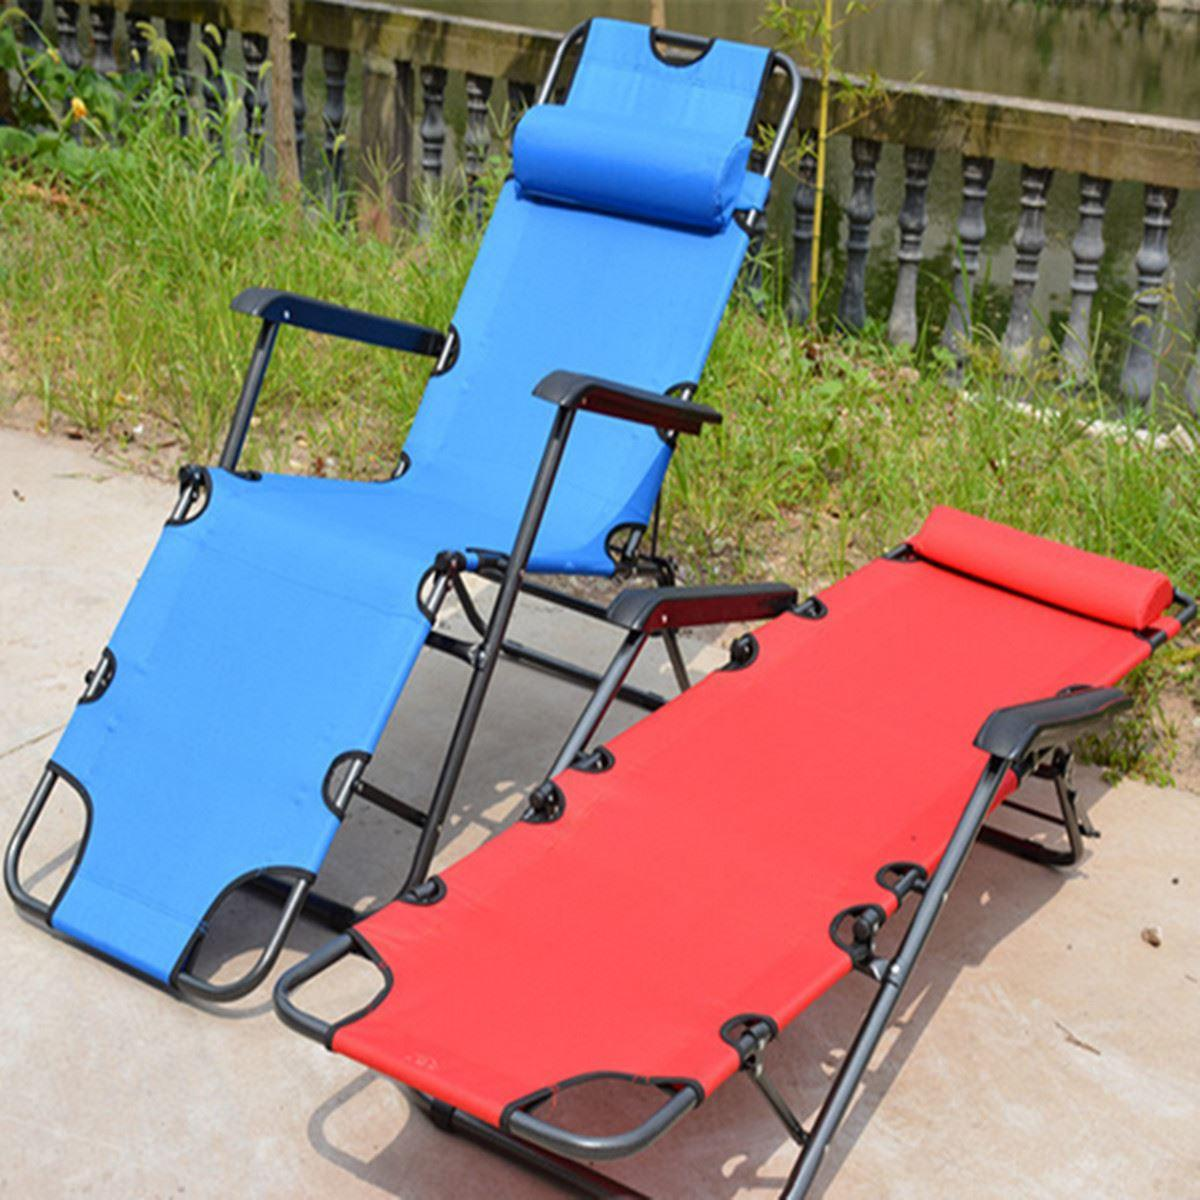 Beach lounge chair portable - Folding Reclining Outdoor Deck Camping Sun Lounger Beach Chair Bed Office Napping Chairs Easy Carry 178